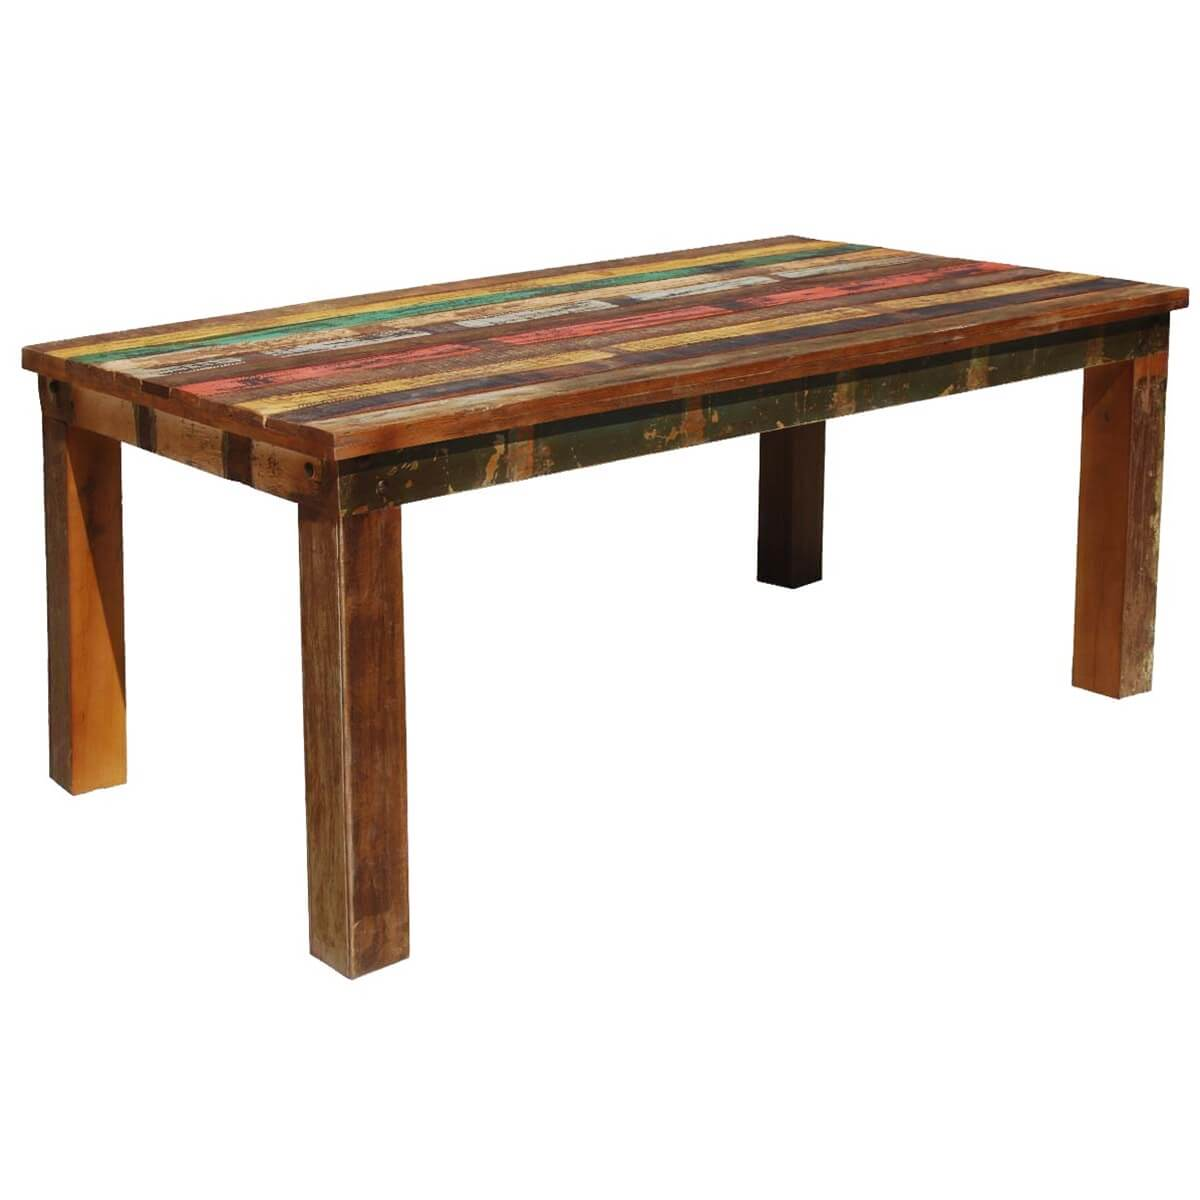 Appalachian rustic reclaimed wood striped dining table Rustic wood dining table